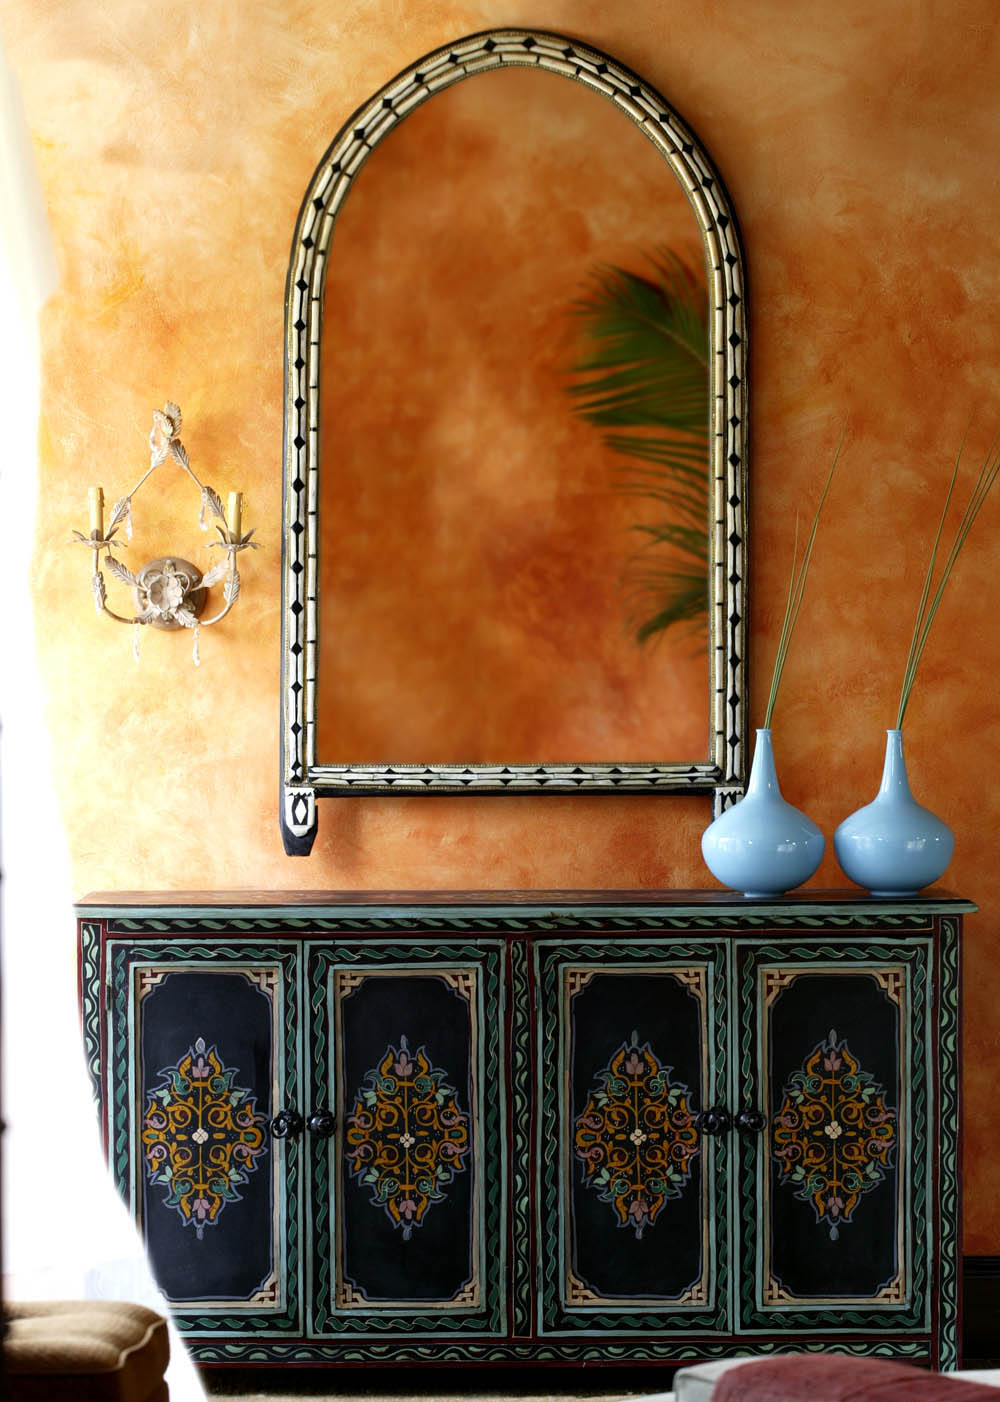 Moroccan furniture - Moroccan Interior design